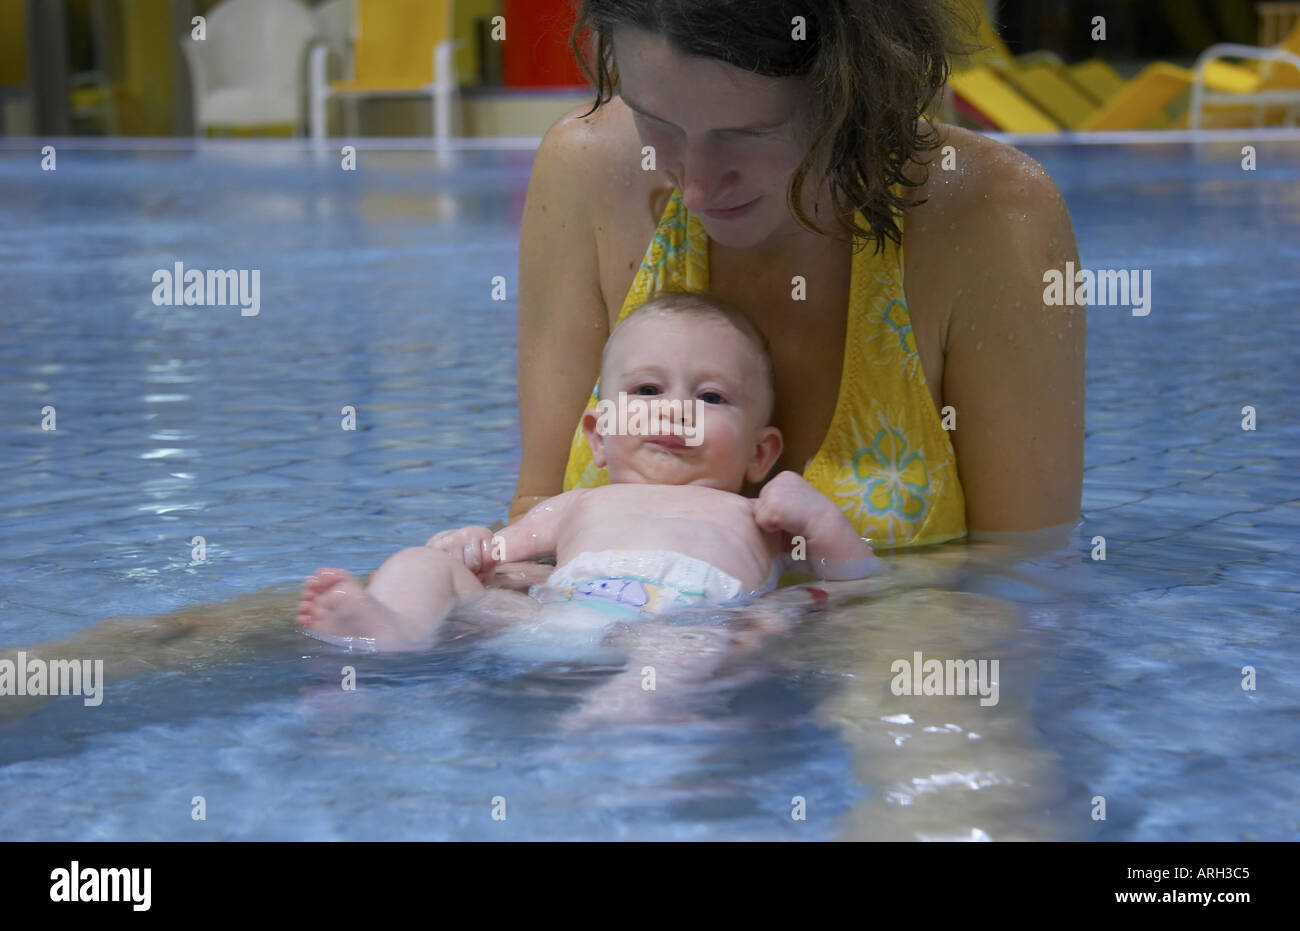 Bath Time Mother And Babies Stock Photos & Bath Time Mother And ...